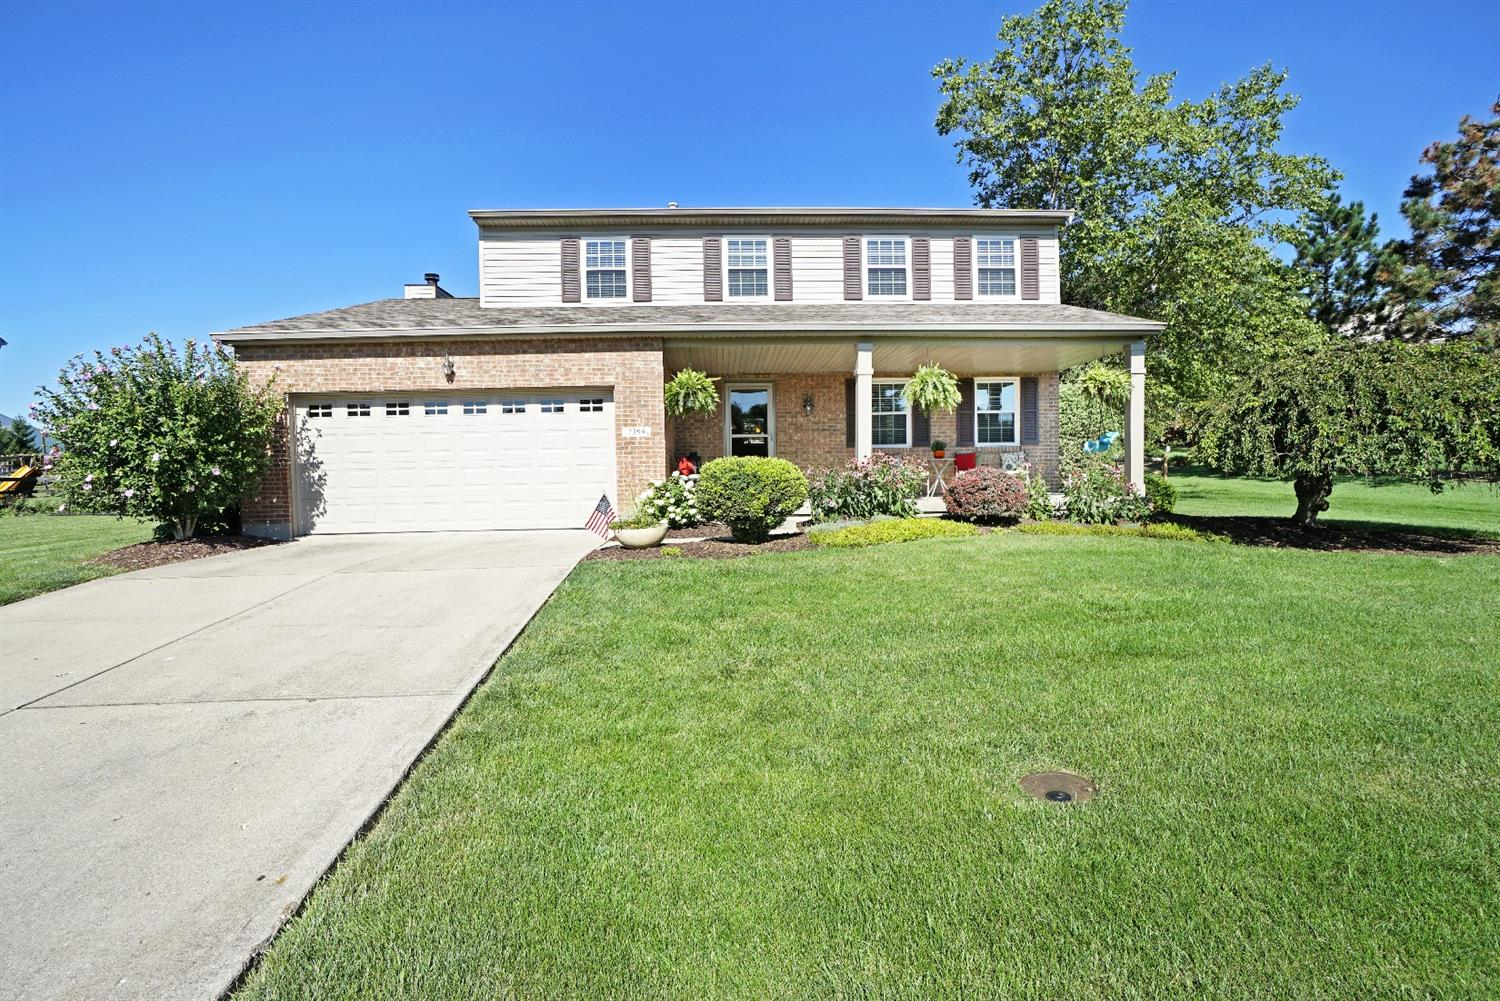 7399 Kilkenny Drive, West Chester, OH 45069